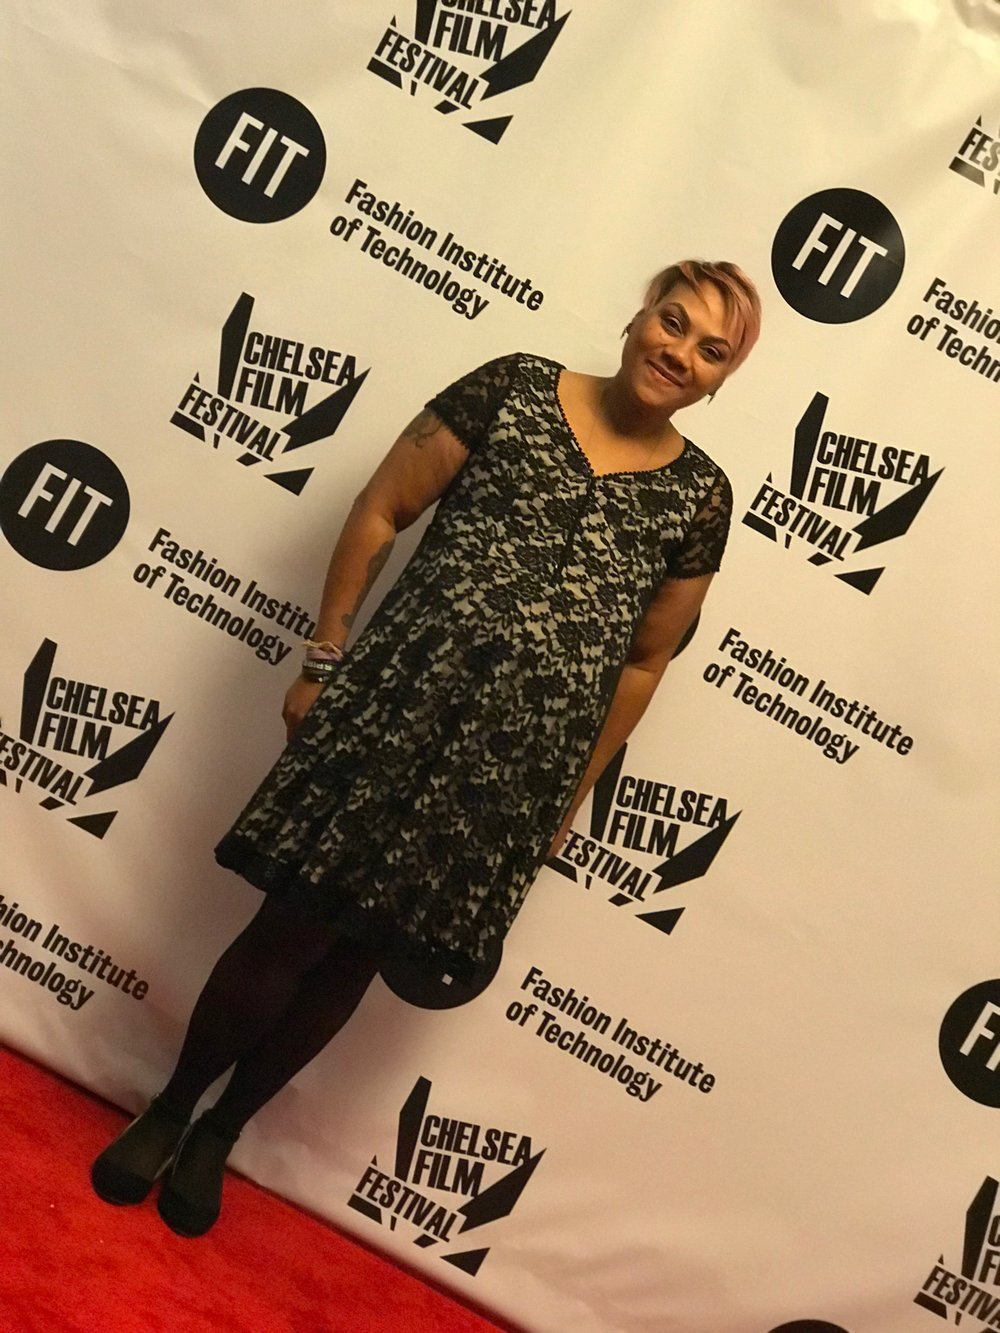 Arlene at the Chelsea Film Festival celebrating her passion for photography.